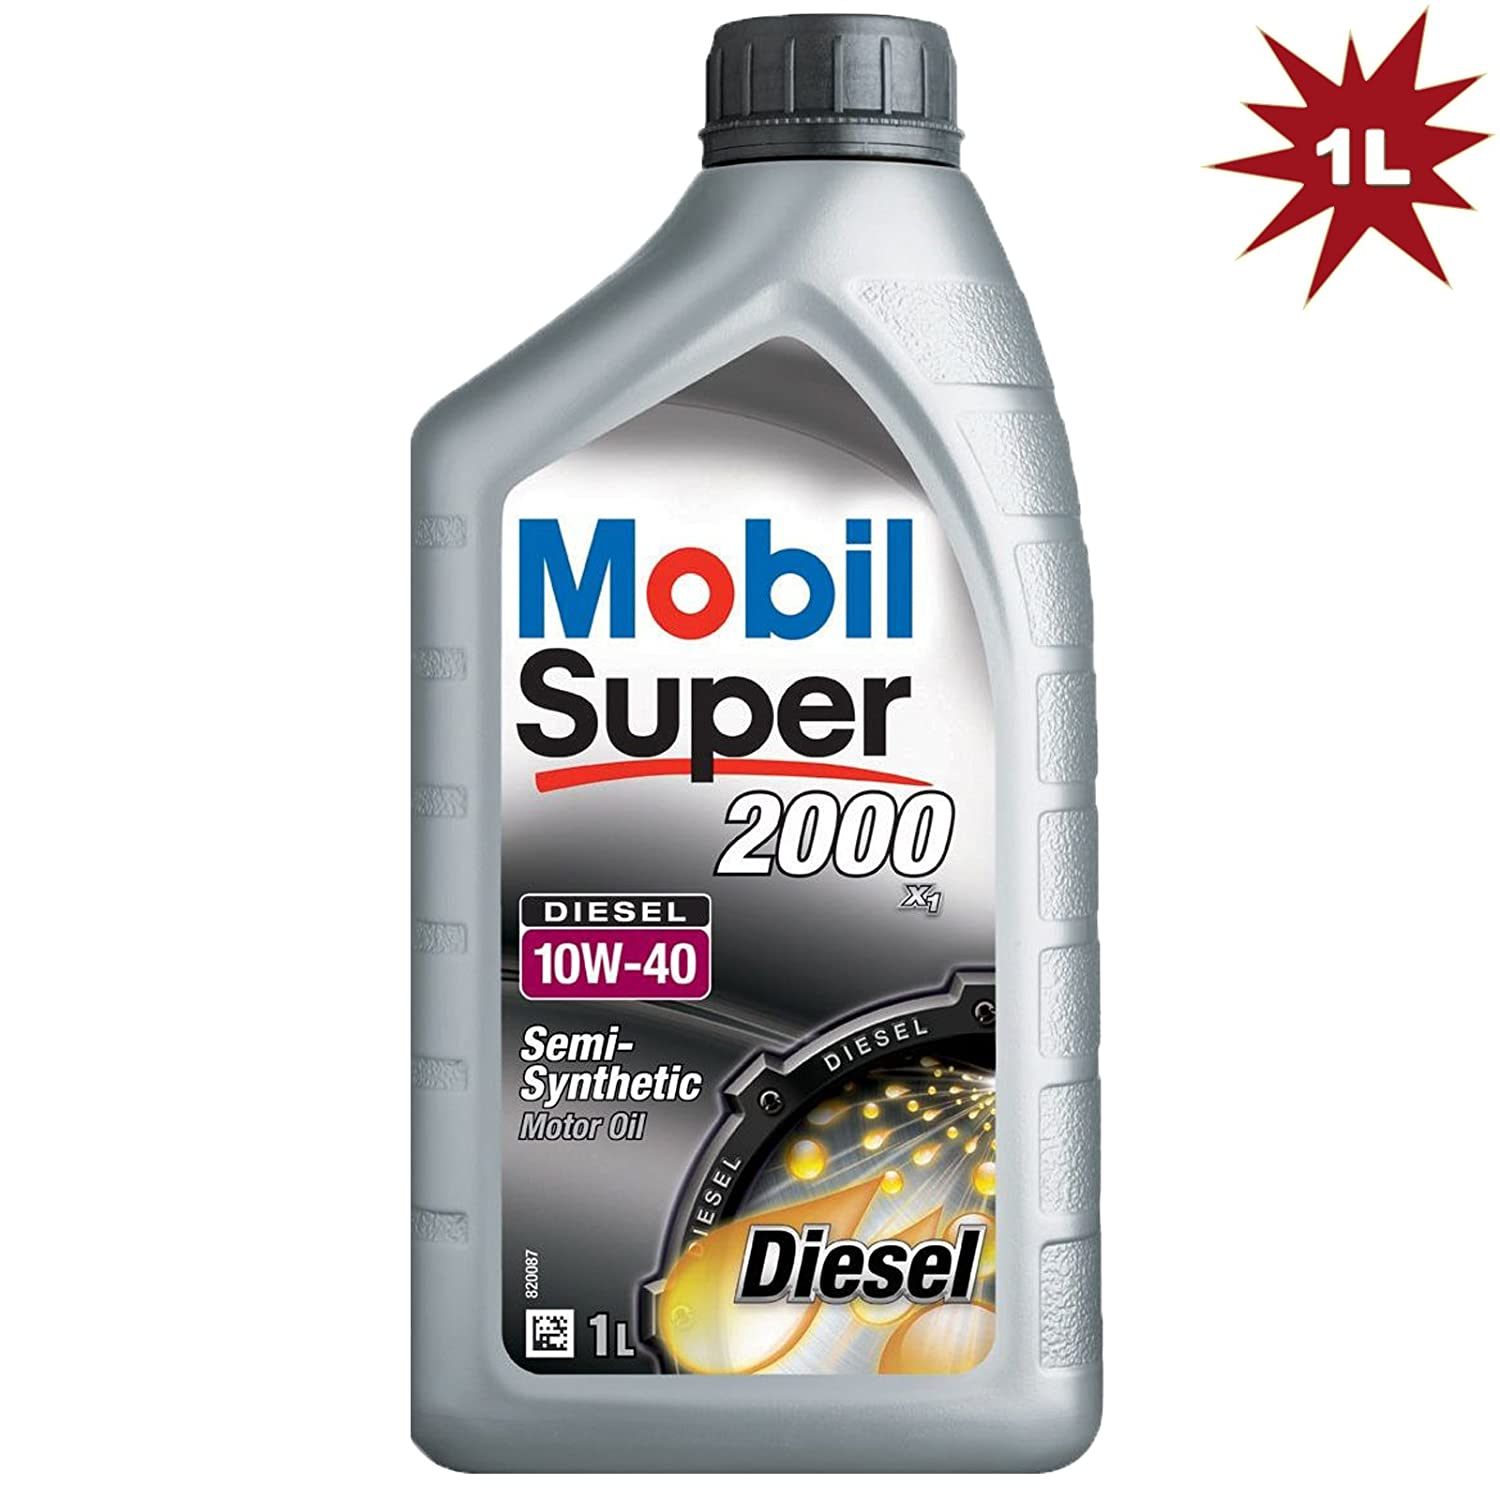 Oil Mobile 10W-40 (semisynthetic): user reviews